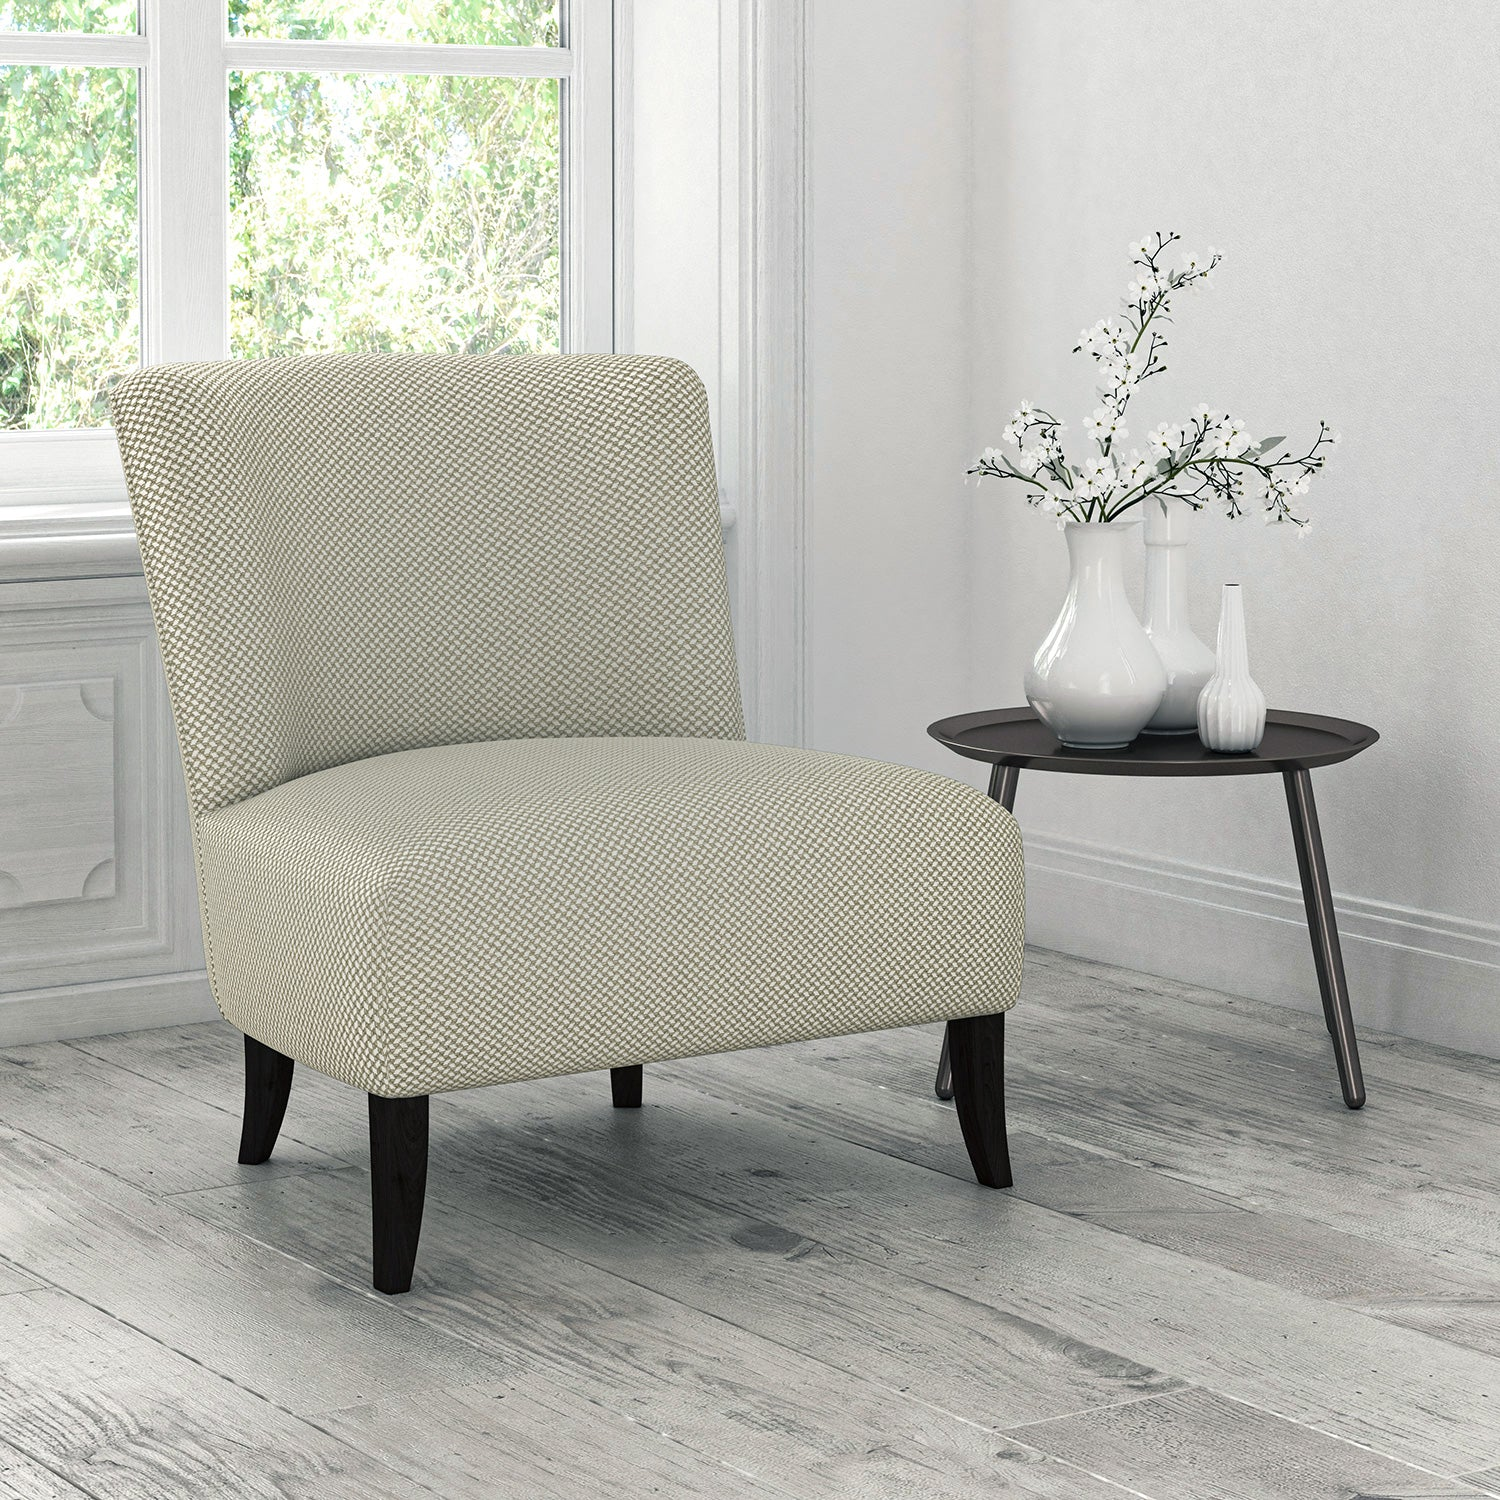 Chair upholstered in a cream stain resistant geometric weave fabric